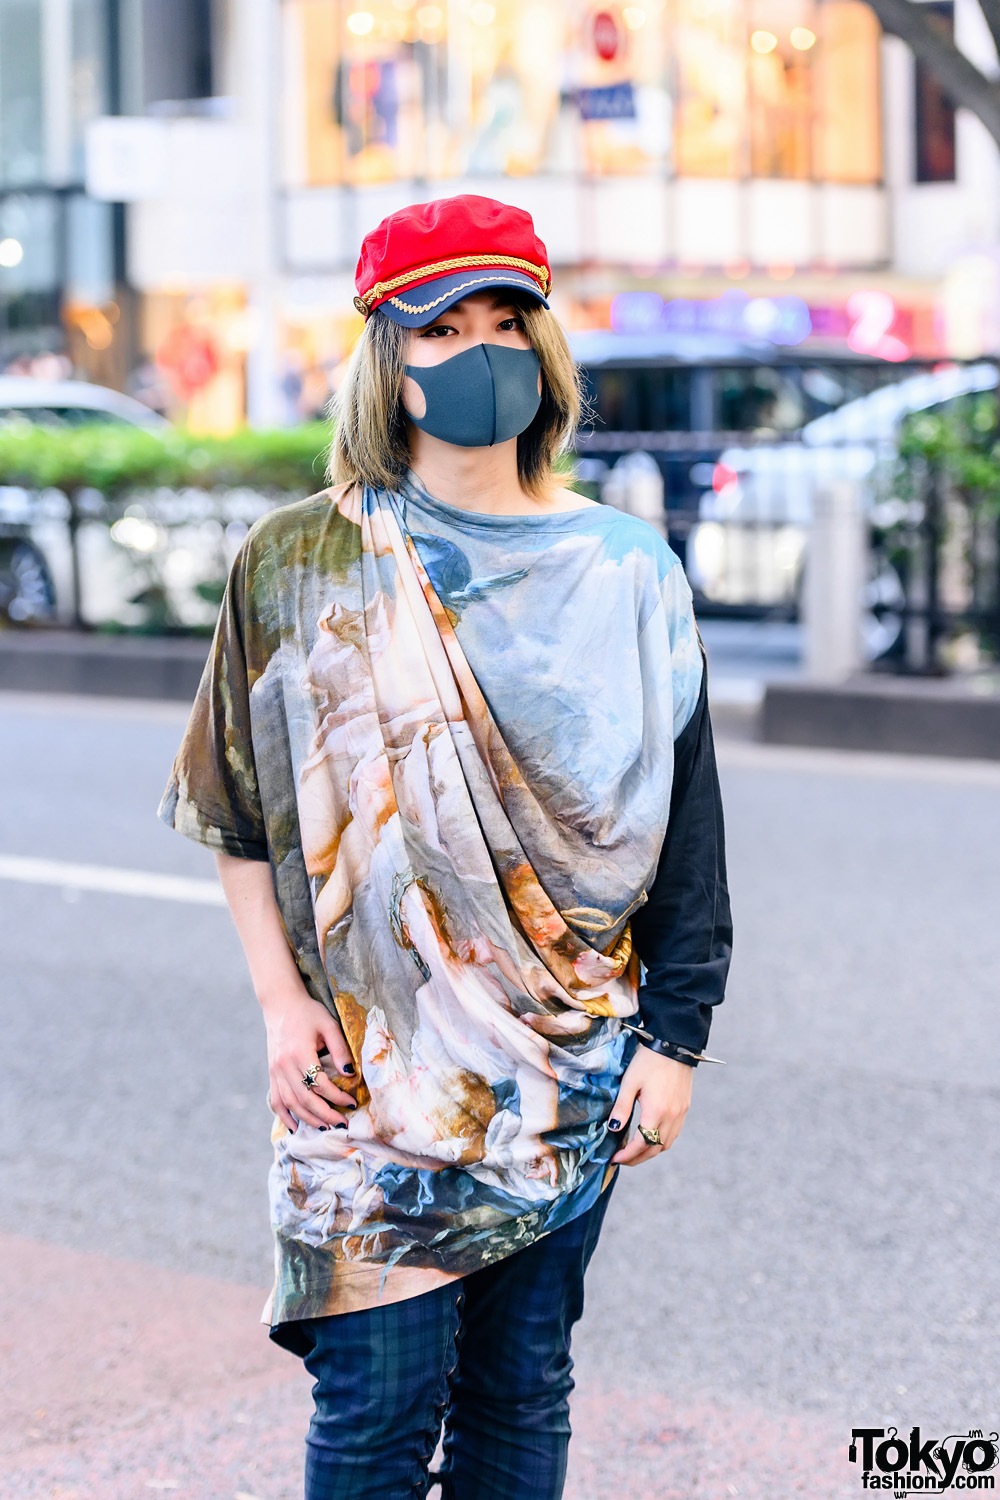 Do Not Post Painist Composer And Dj In Red Conductor Hat Vivienne Westwood Men Drape Shirt Milkboy Checkered Pants Dr Martens Boots And Milkboy Accessories Tokyo Fashion